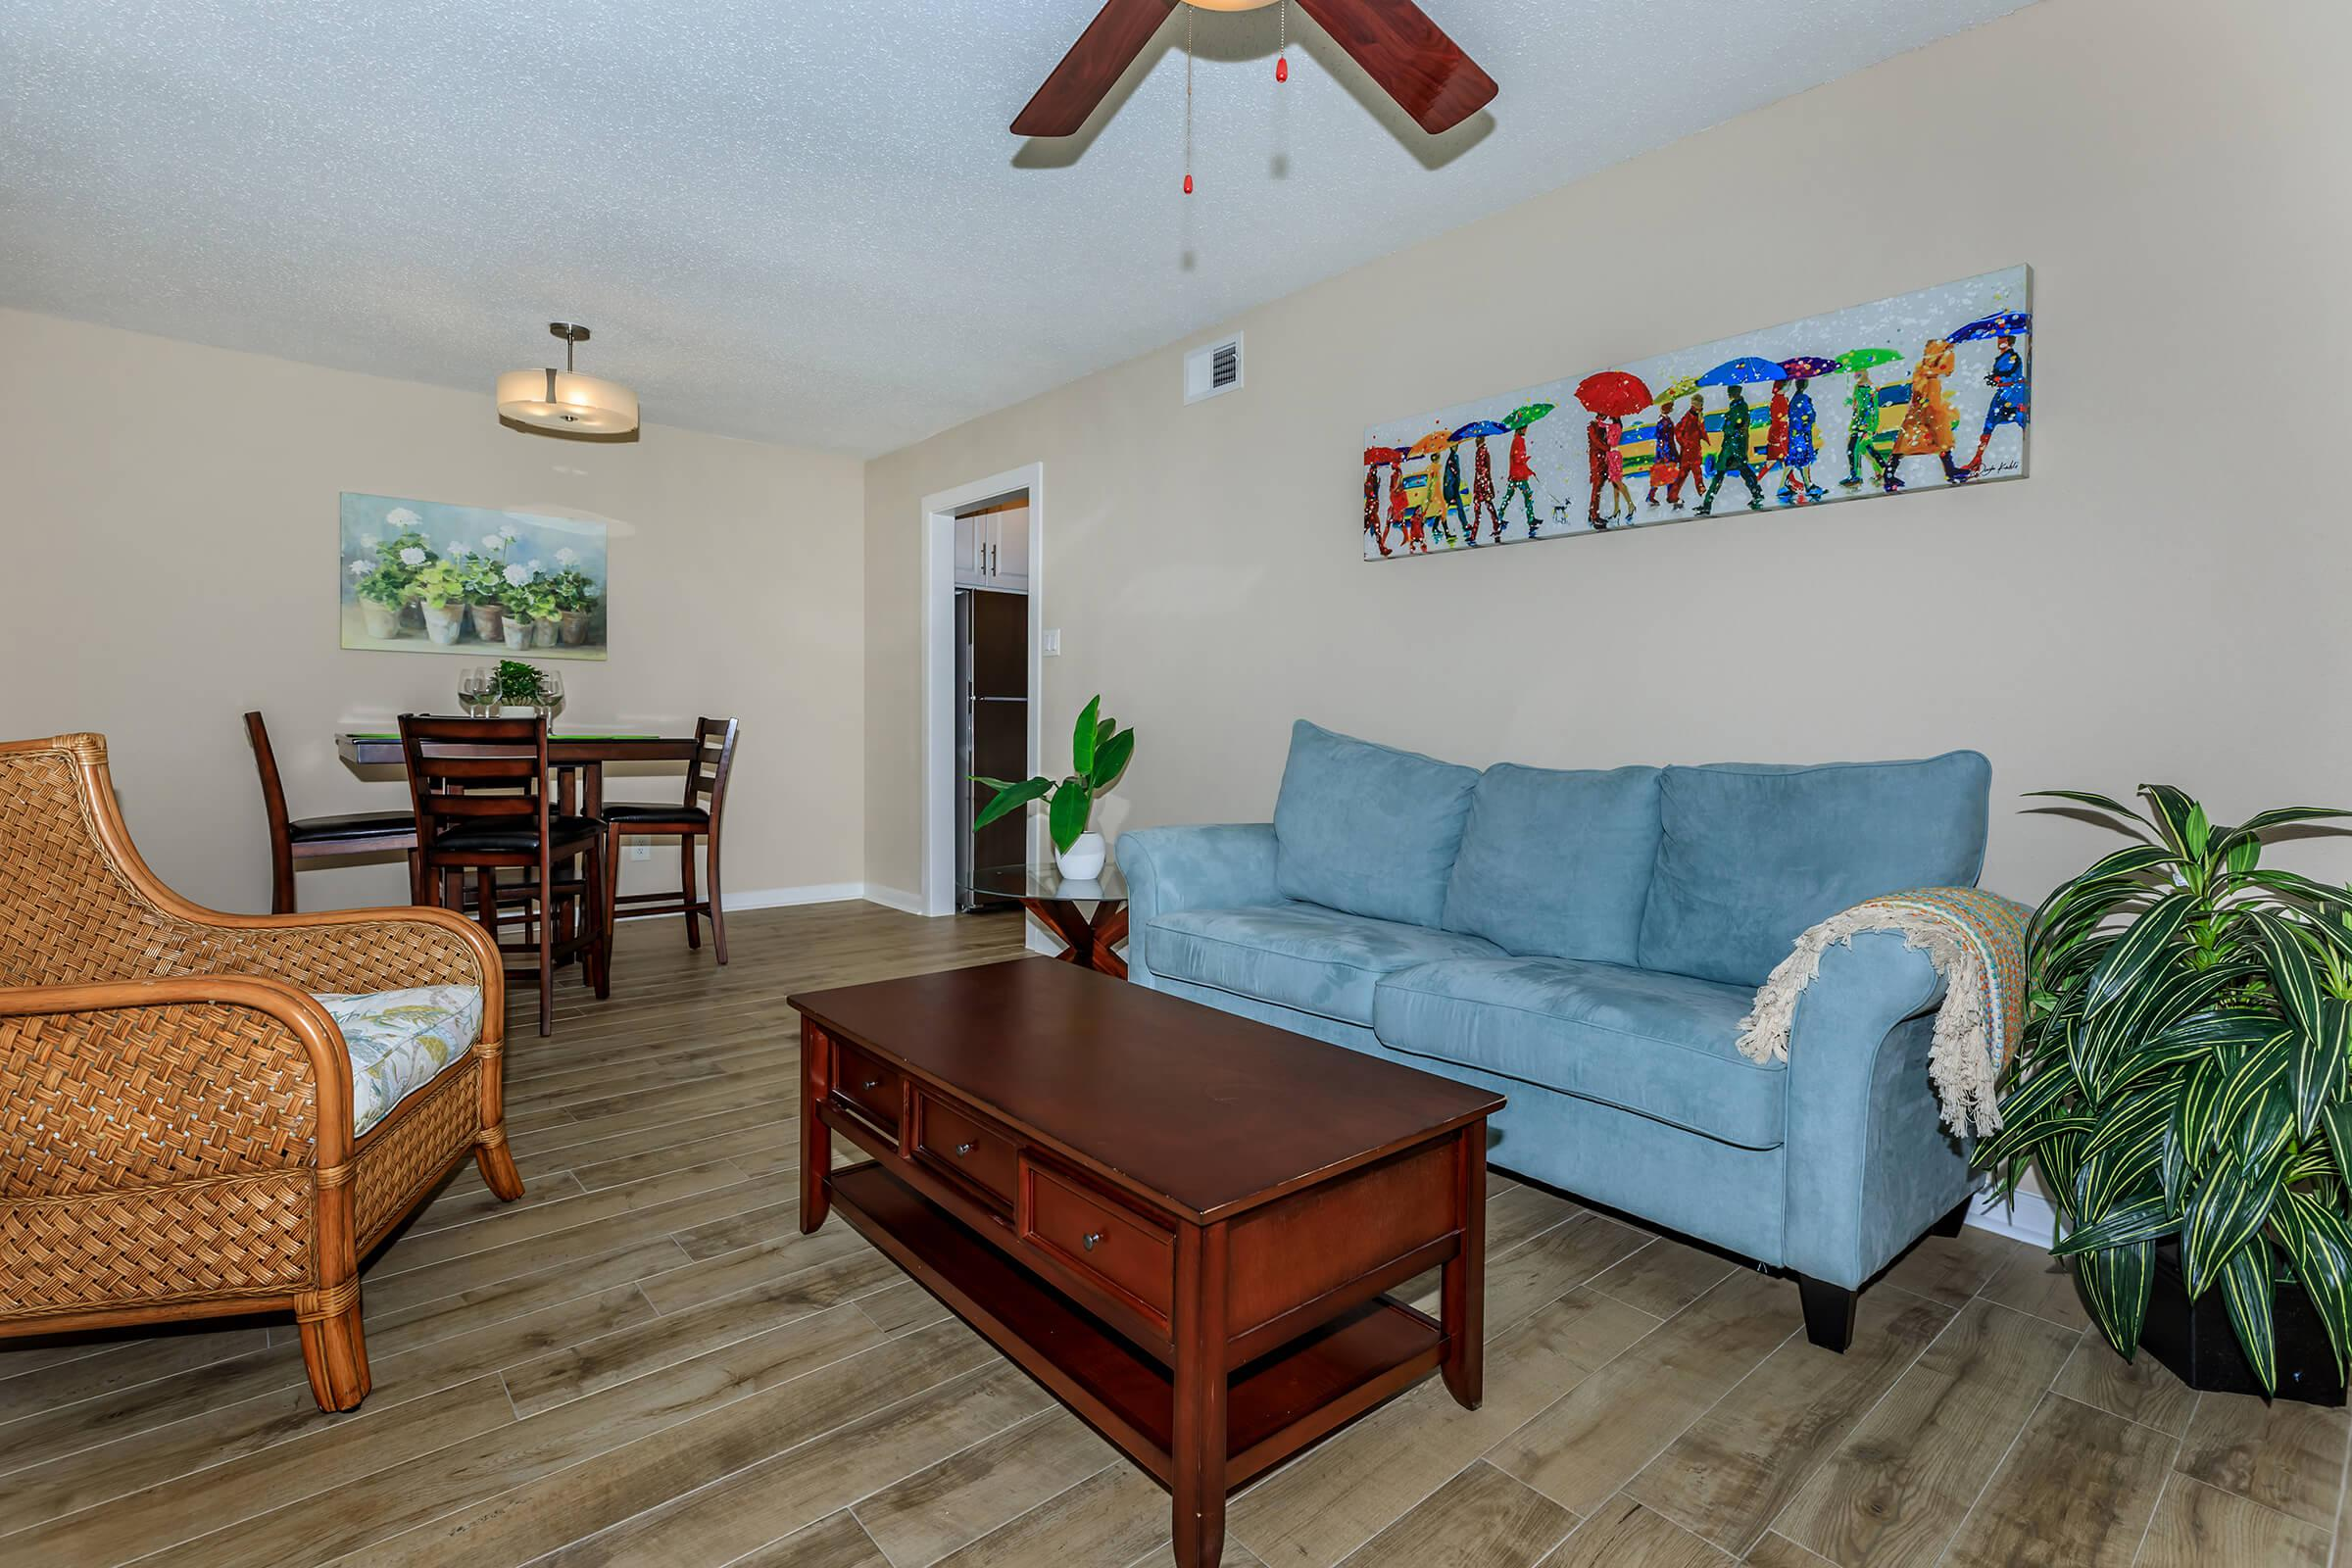 WELCOME HOME TO MONTABELLA AT OAK FOREST APARTMENTS